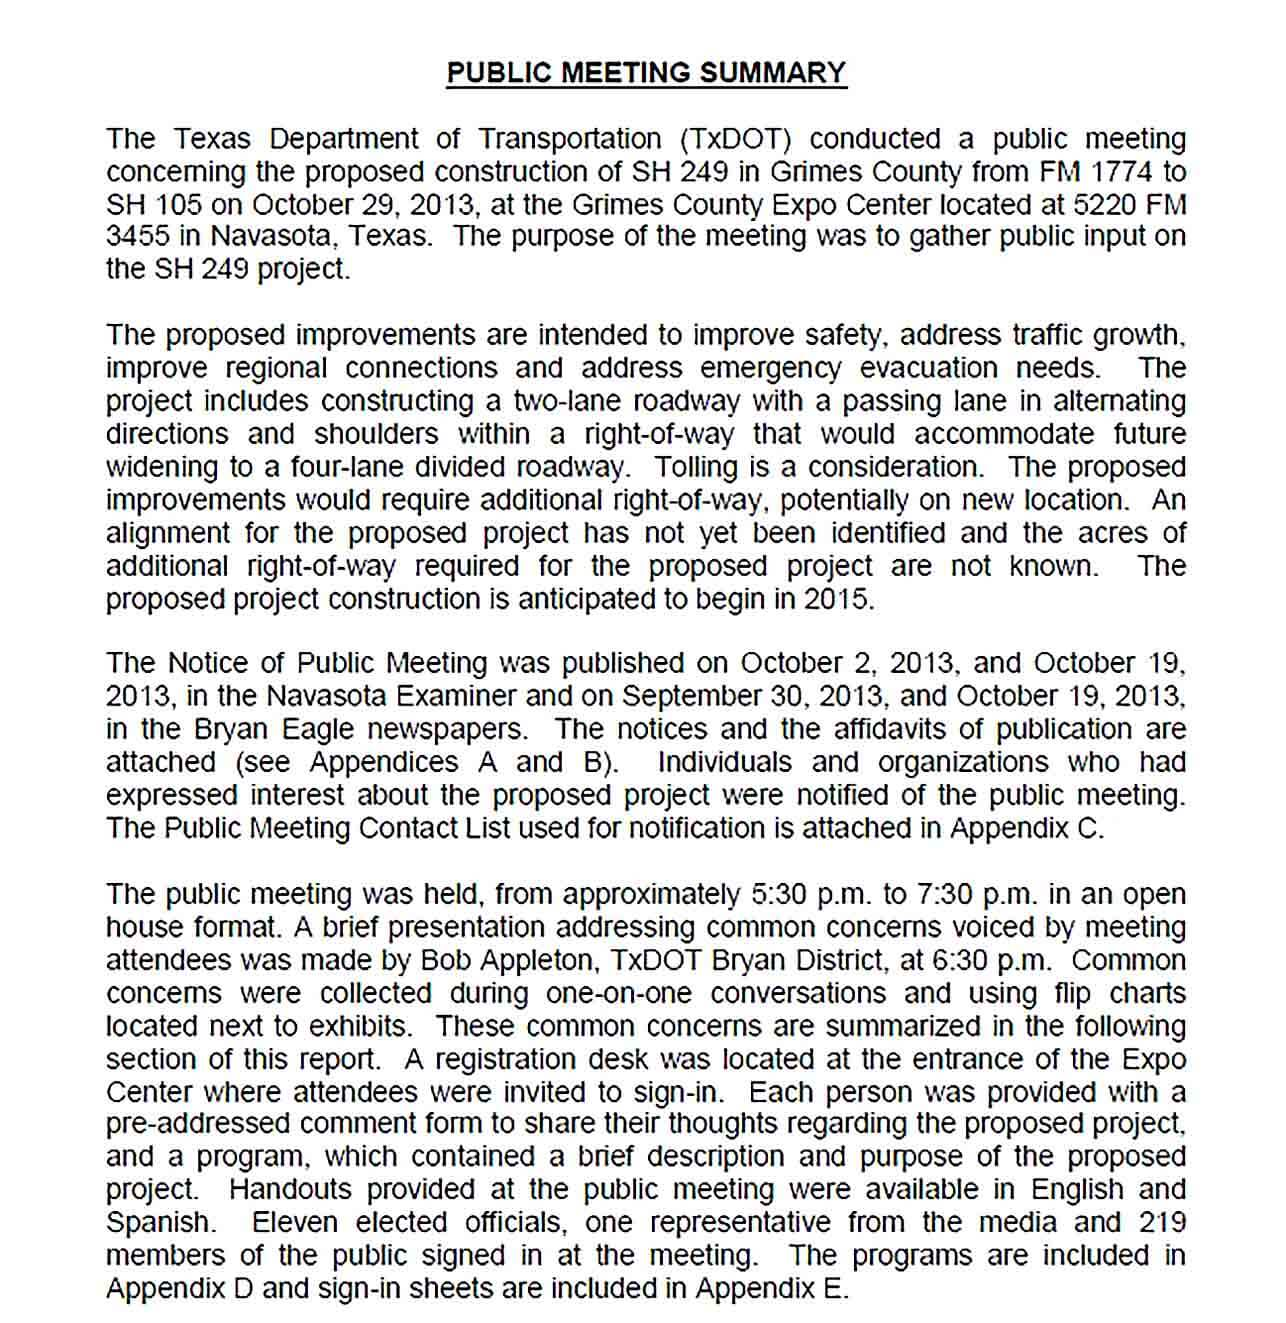 Sample Public Meeting Summary Report PDF